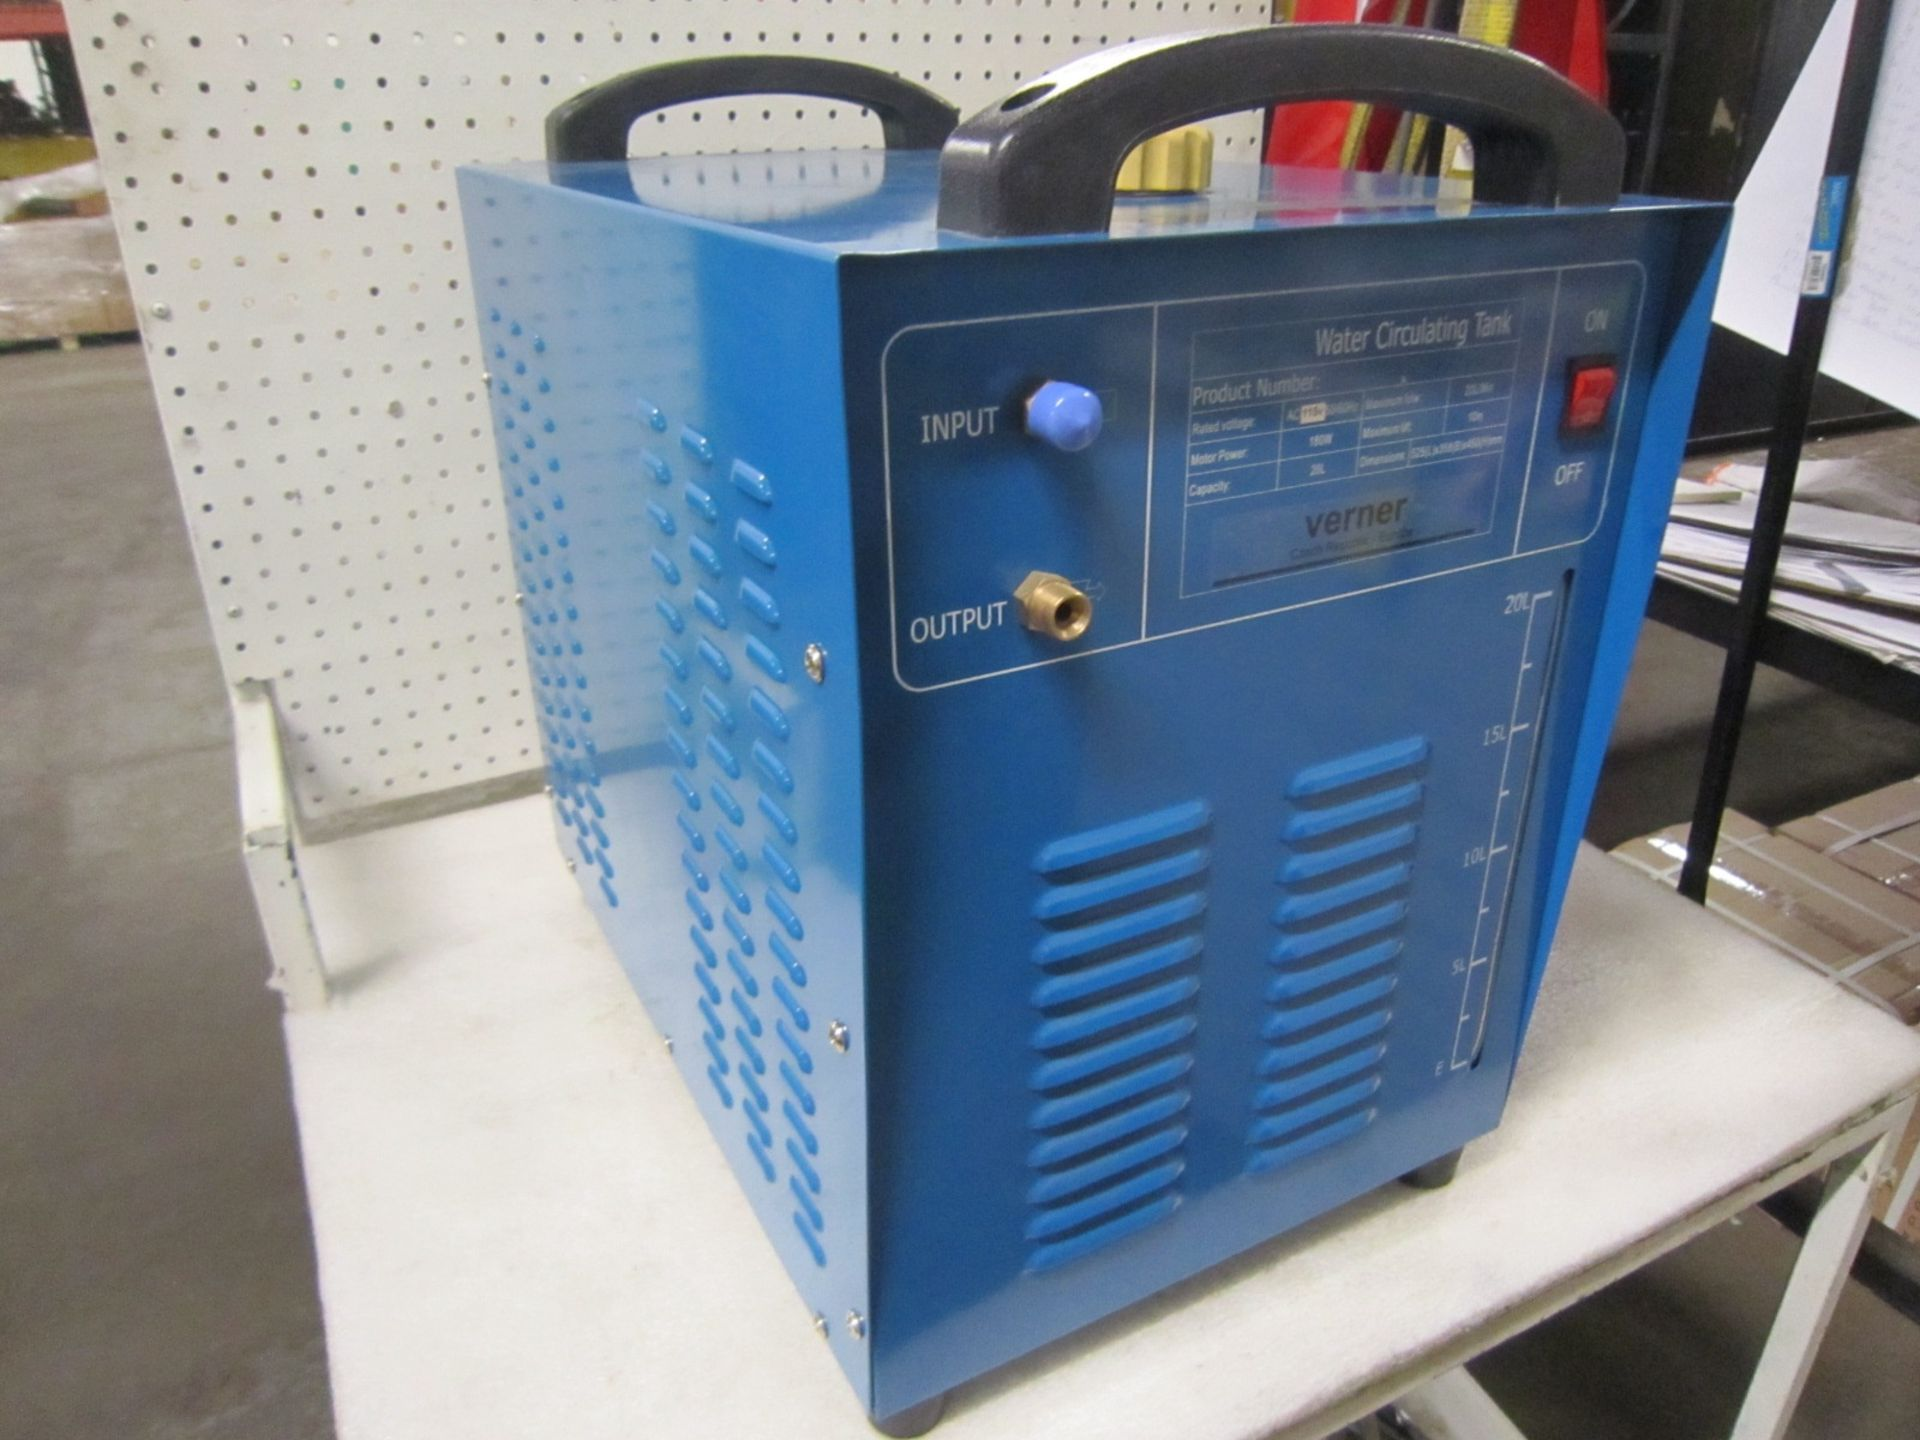 Lot 60 - Verner Water Circulating Tig Welding Water Cooler - 20 Litre Capacity Brand new - 115V Single Phase